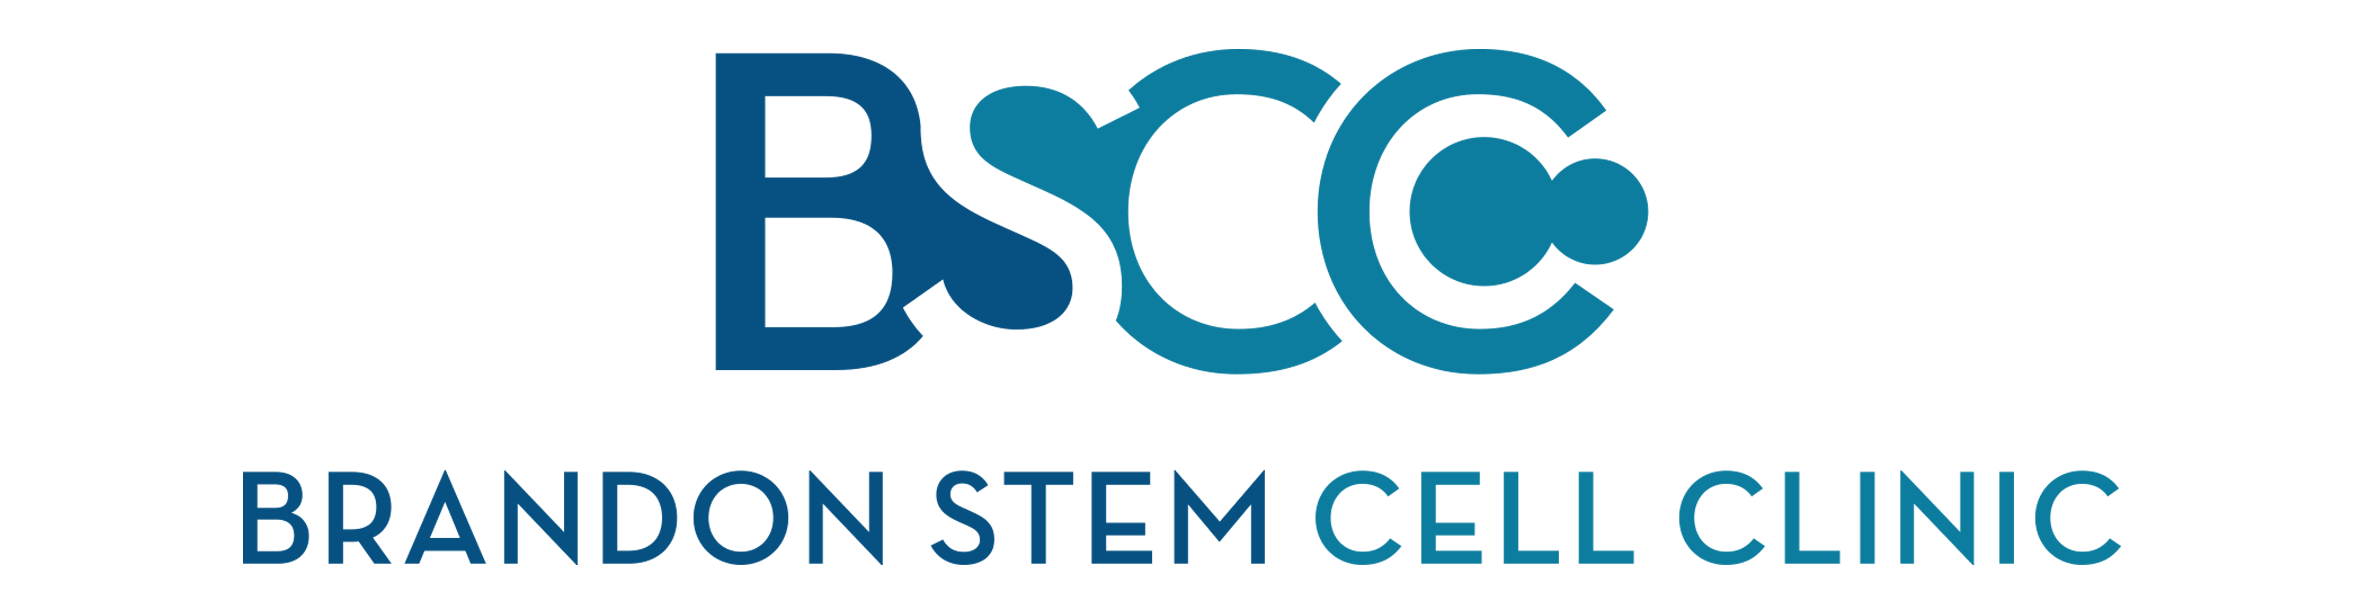 Stem Cell Clinic & Therapy - Brandon, Florida 33511